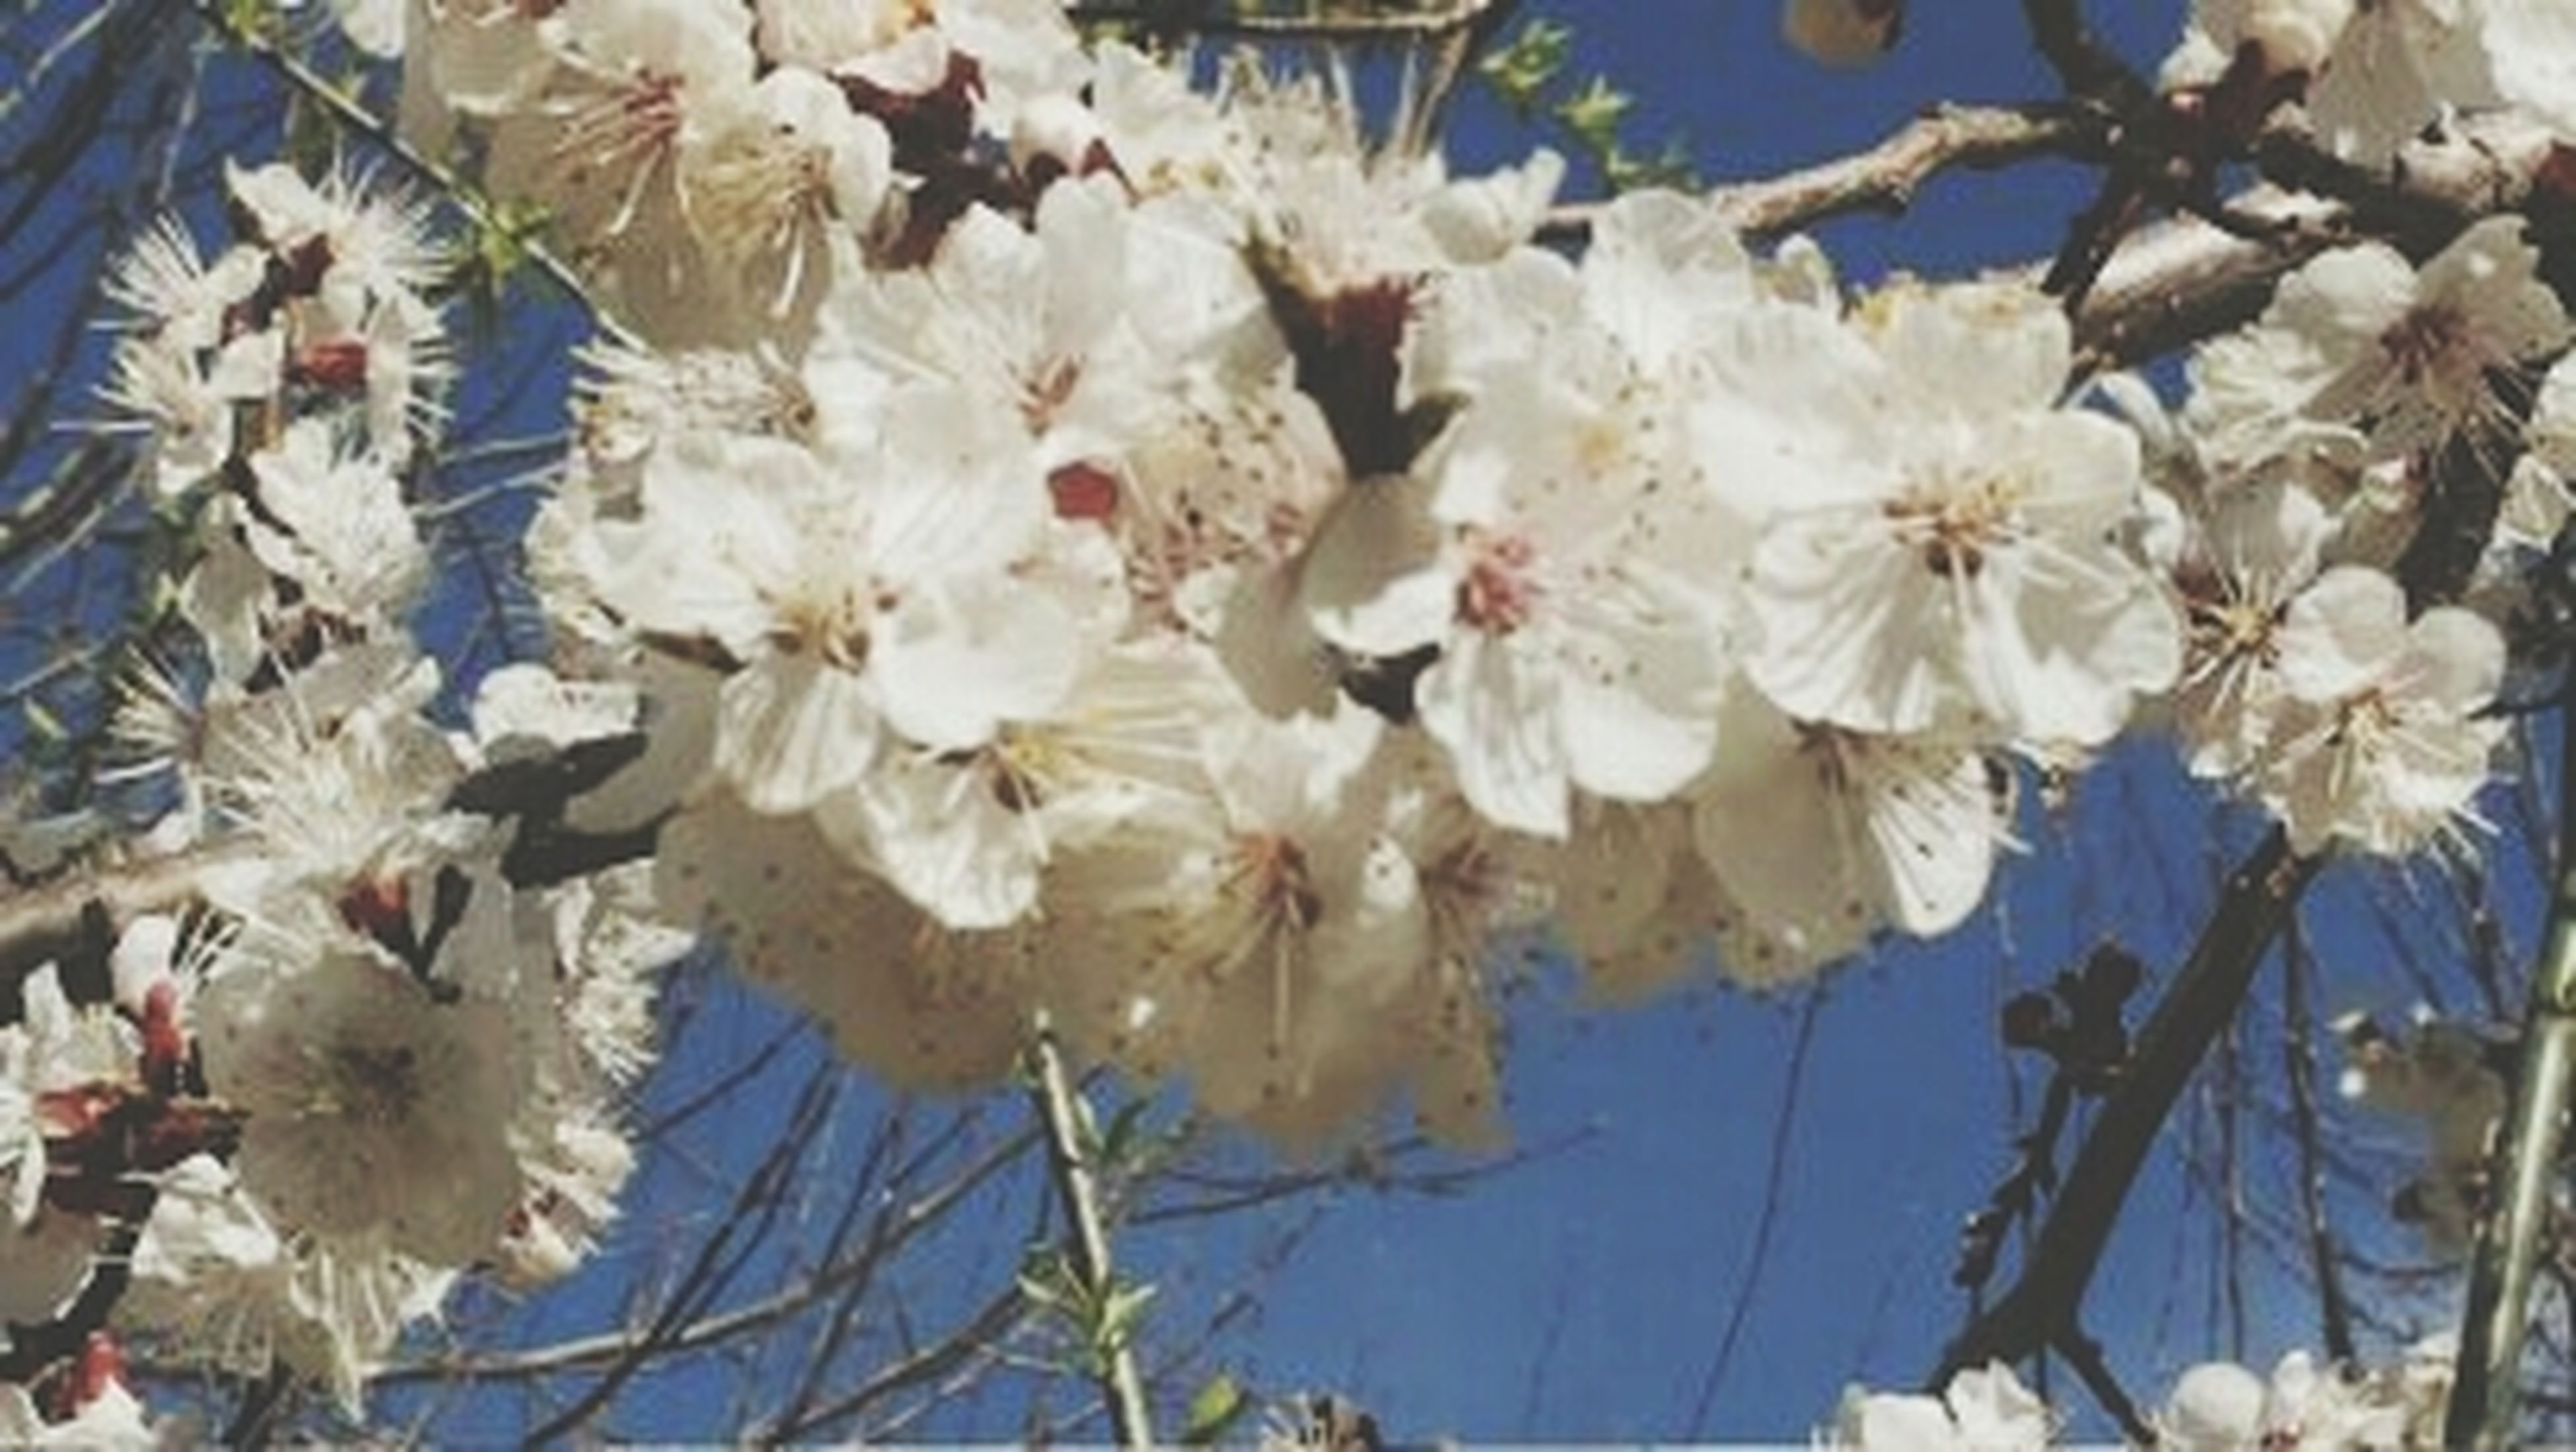 flower, freshness, fragility, growth, branch, nature, white color, beauty in nature, petal, low angle view, cherry blossom, blooming, blossom, close-up, day, tree, in bloom, focus on foreground, flower head, outdoors